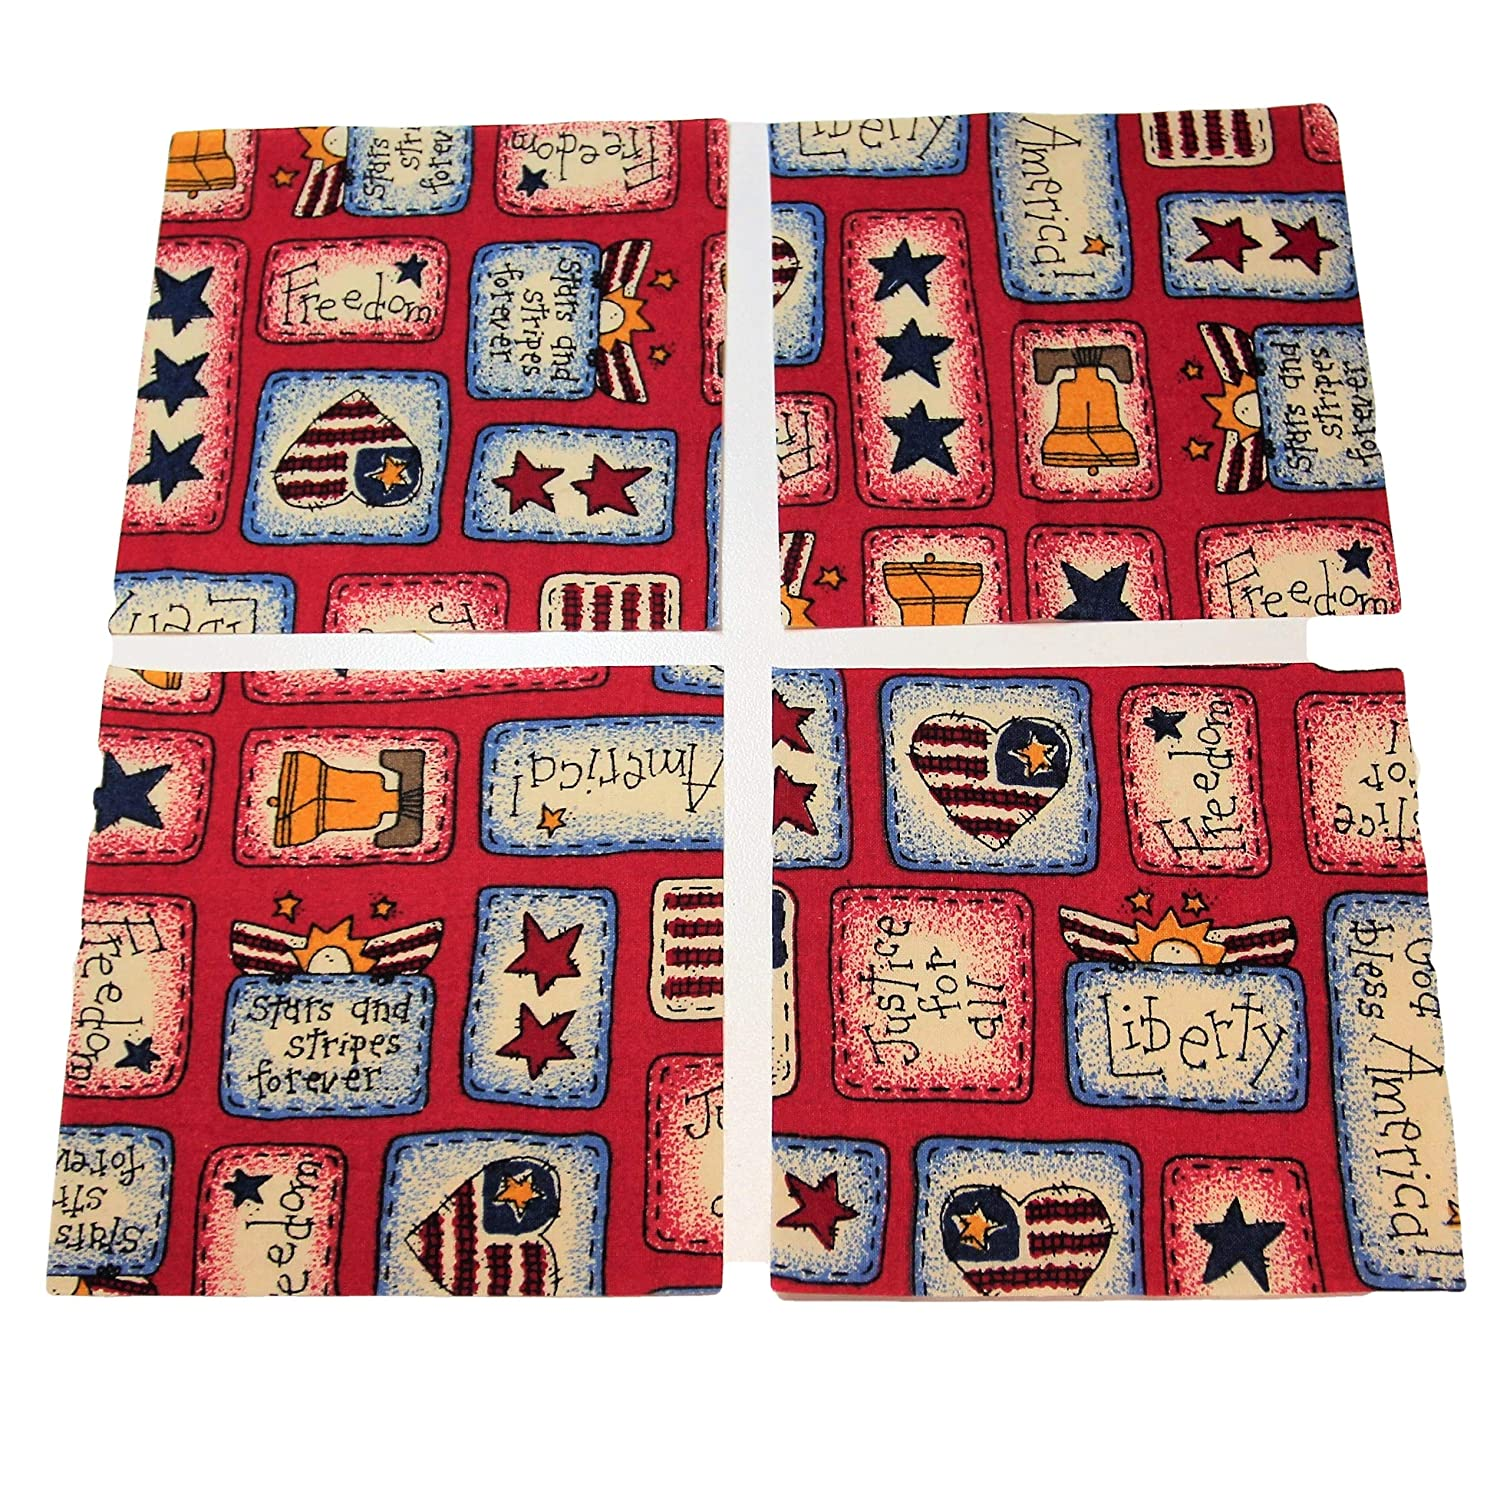 Fabric Charm Packs Charm Packs for Quilting Set of 56-5 Inch Squares DIE Cut Precut Fabric Autumn Forest Quilt Fabric Seasonal Charm Pack